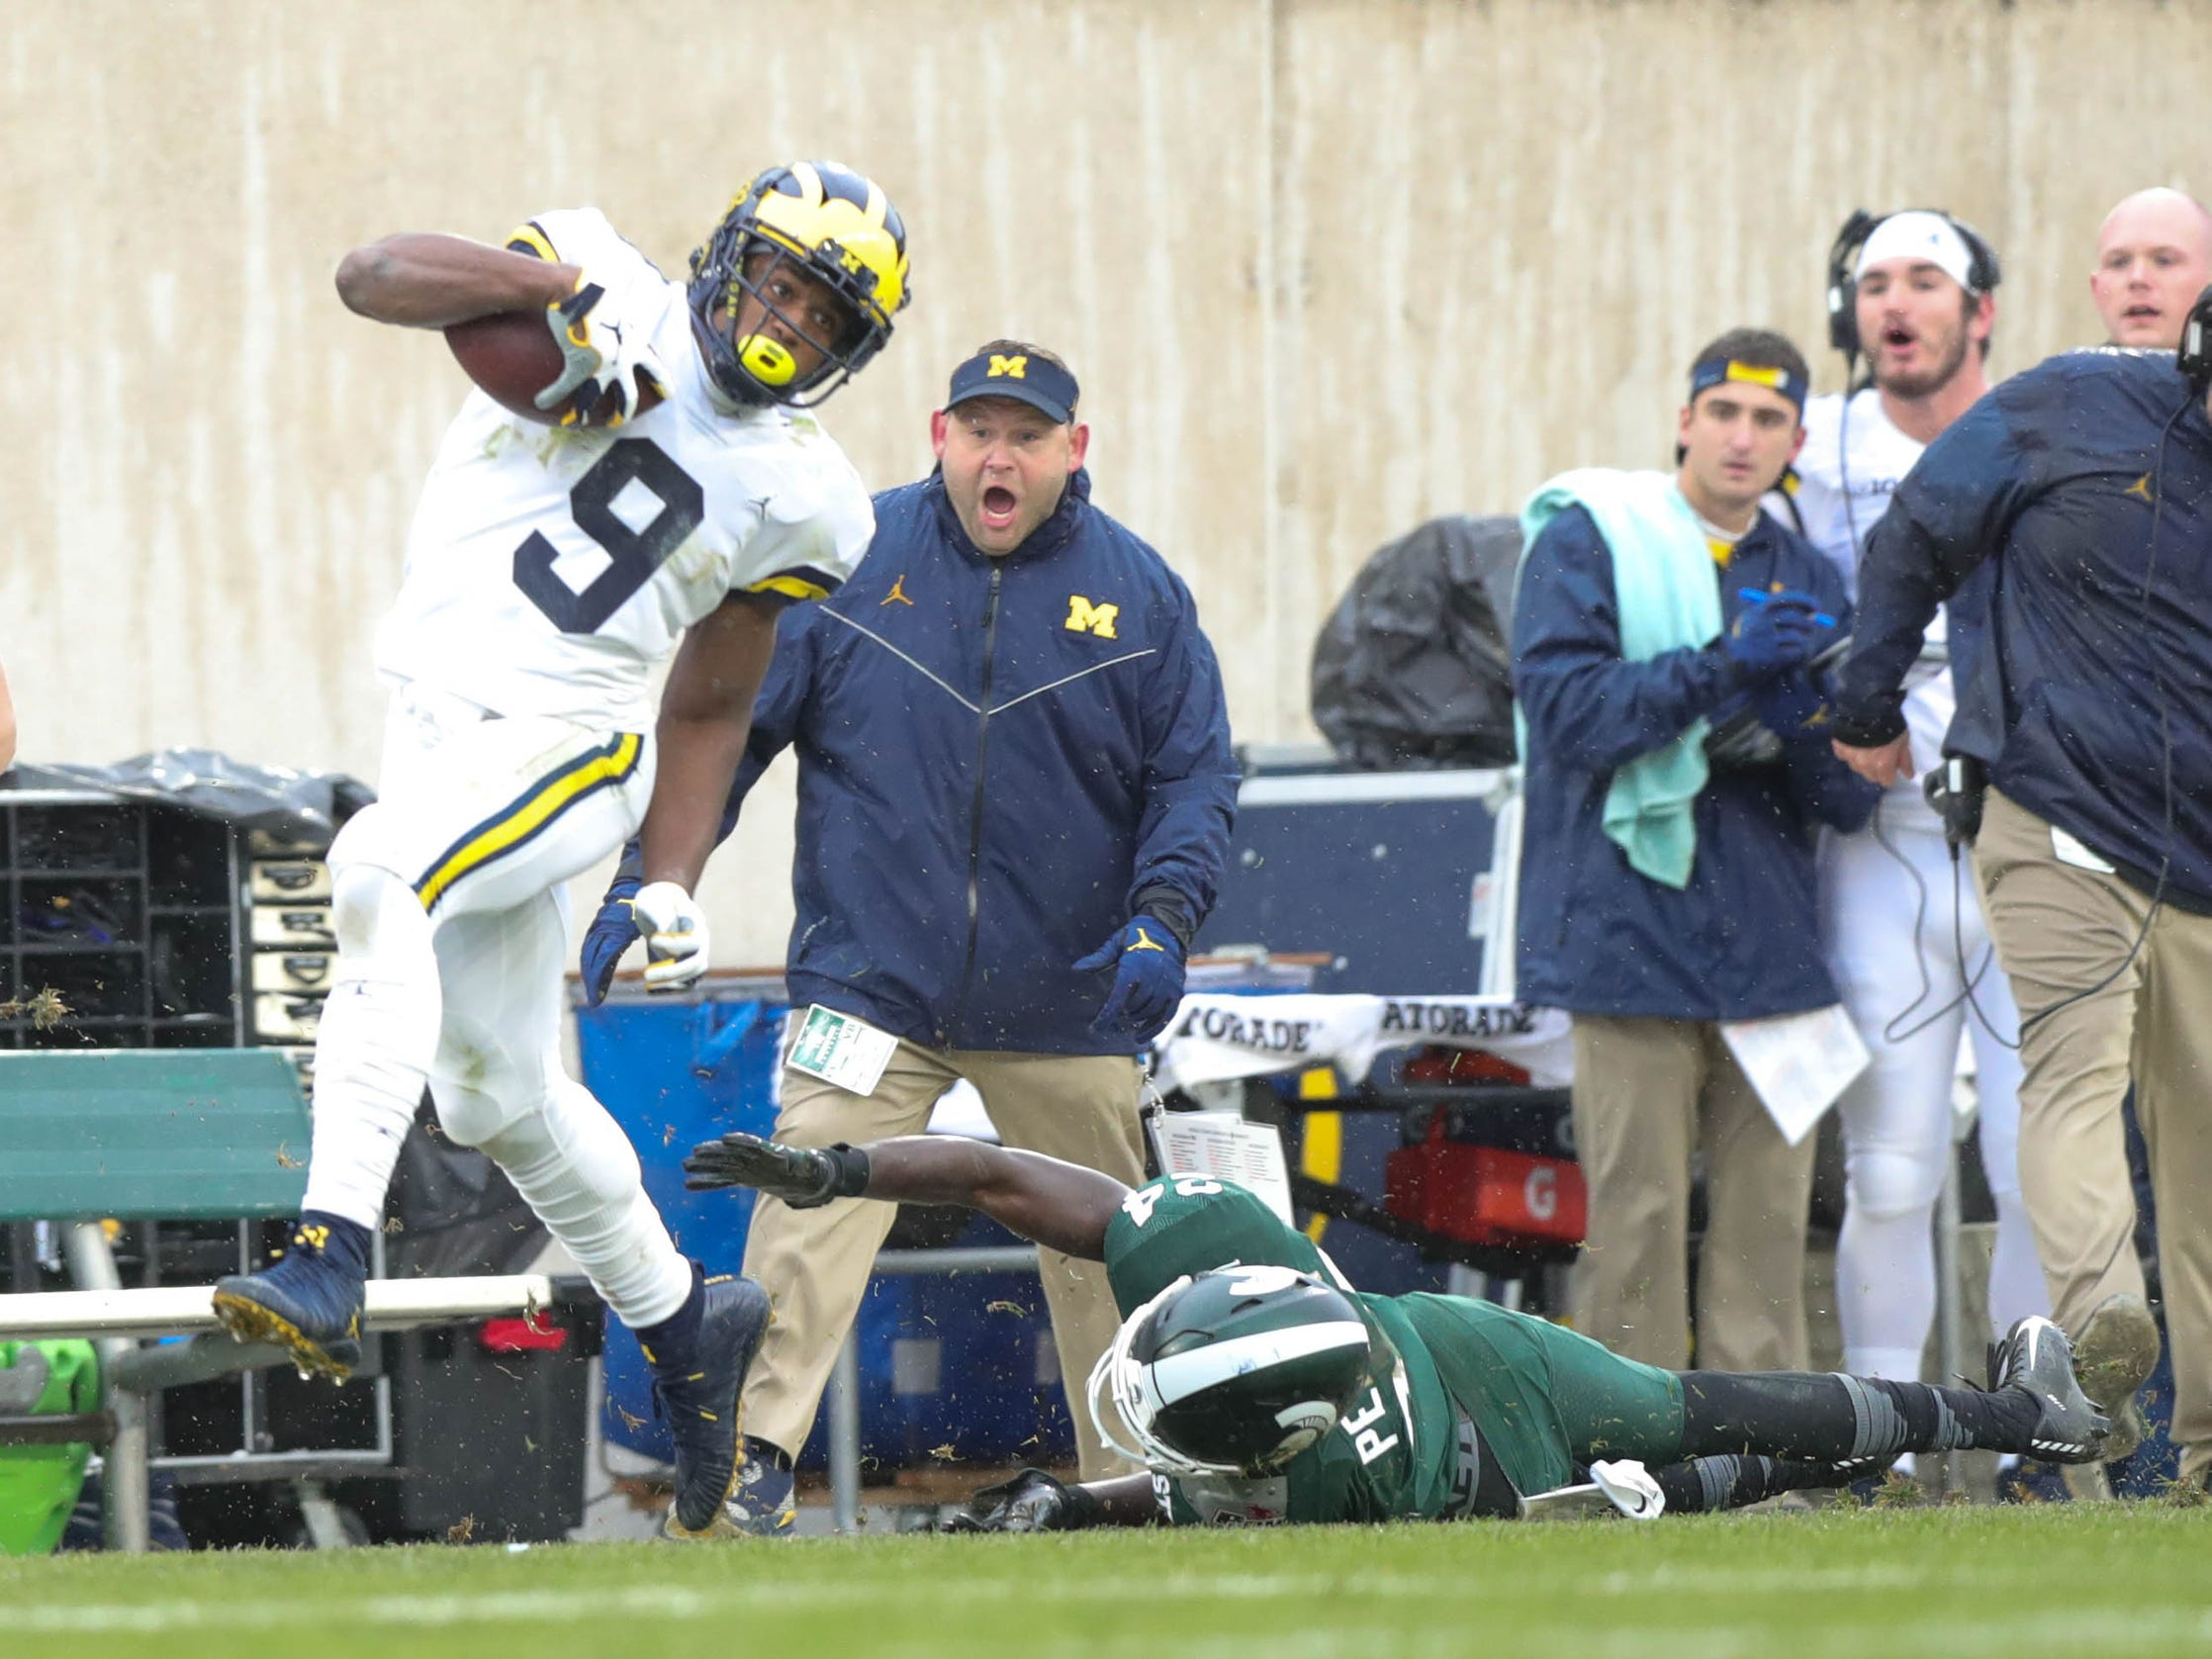 Michigan's Donovan Peoples-Jones catches the go-ahead touchdown pass against Michigan State's Tre Person during the third quarter Saturday, Oct. 20, 2018 at Spartan Stadium in East Lansing.